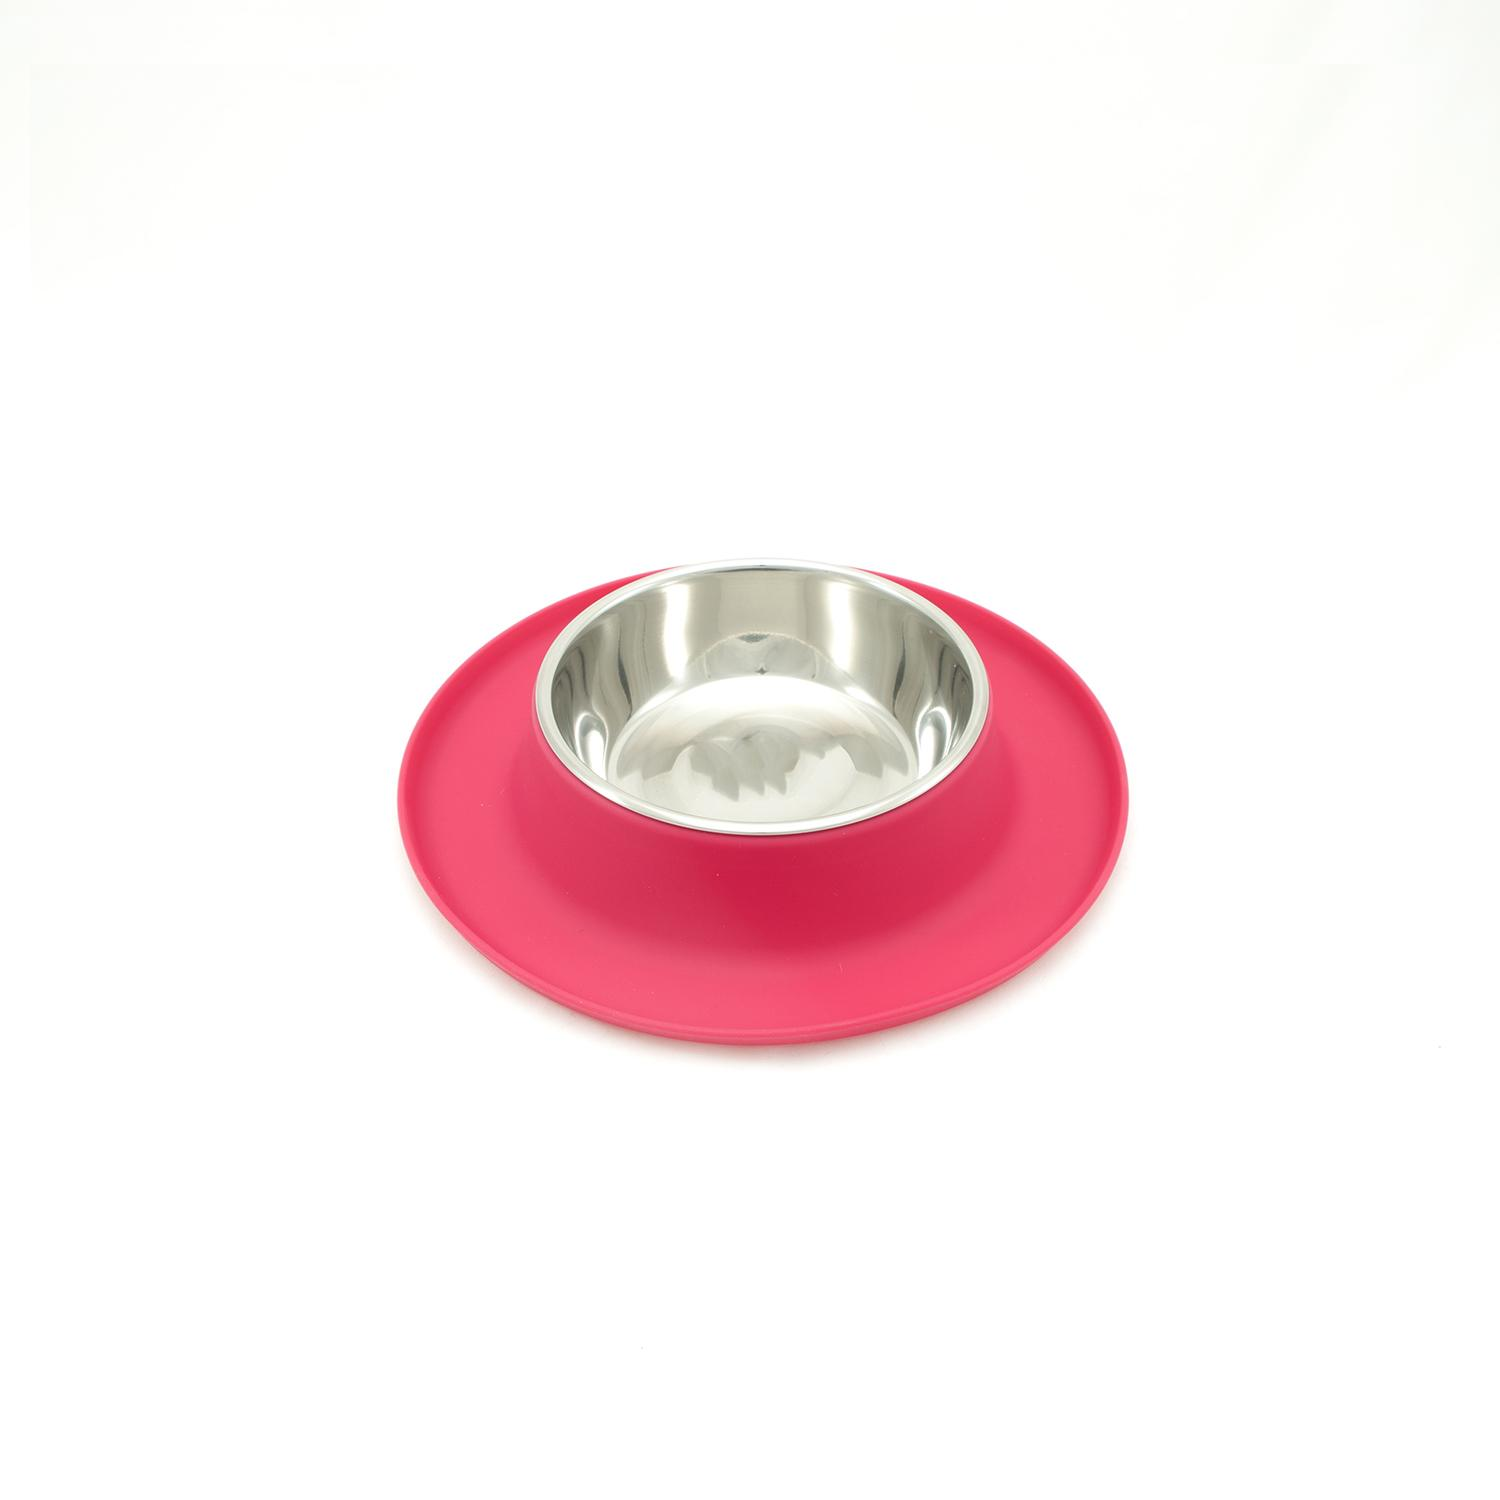 Messy Cats Single Silicone Feeder with Stainless Saucer Shaped Bowl, Watermelon